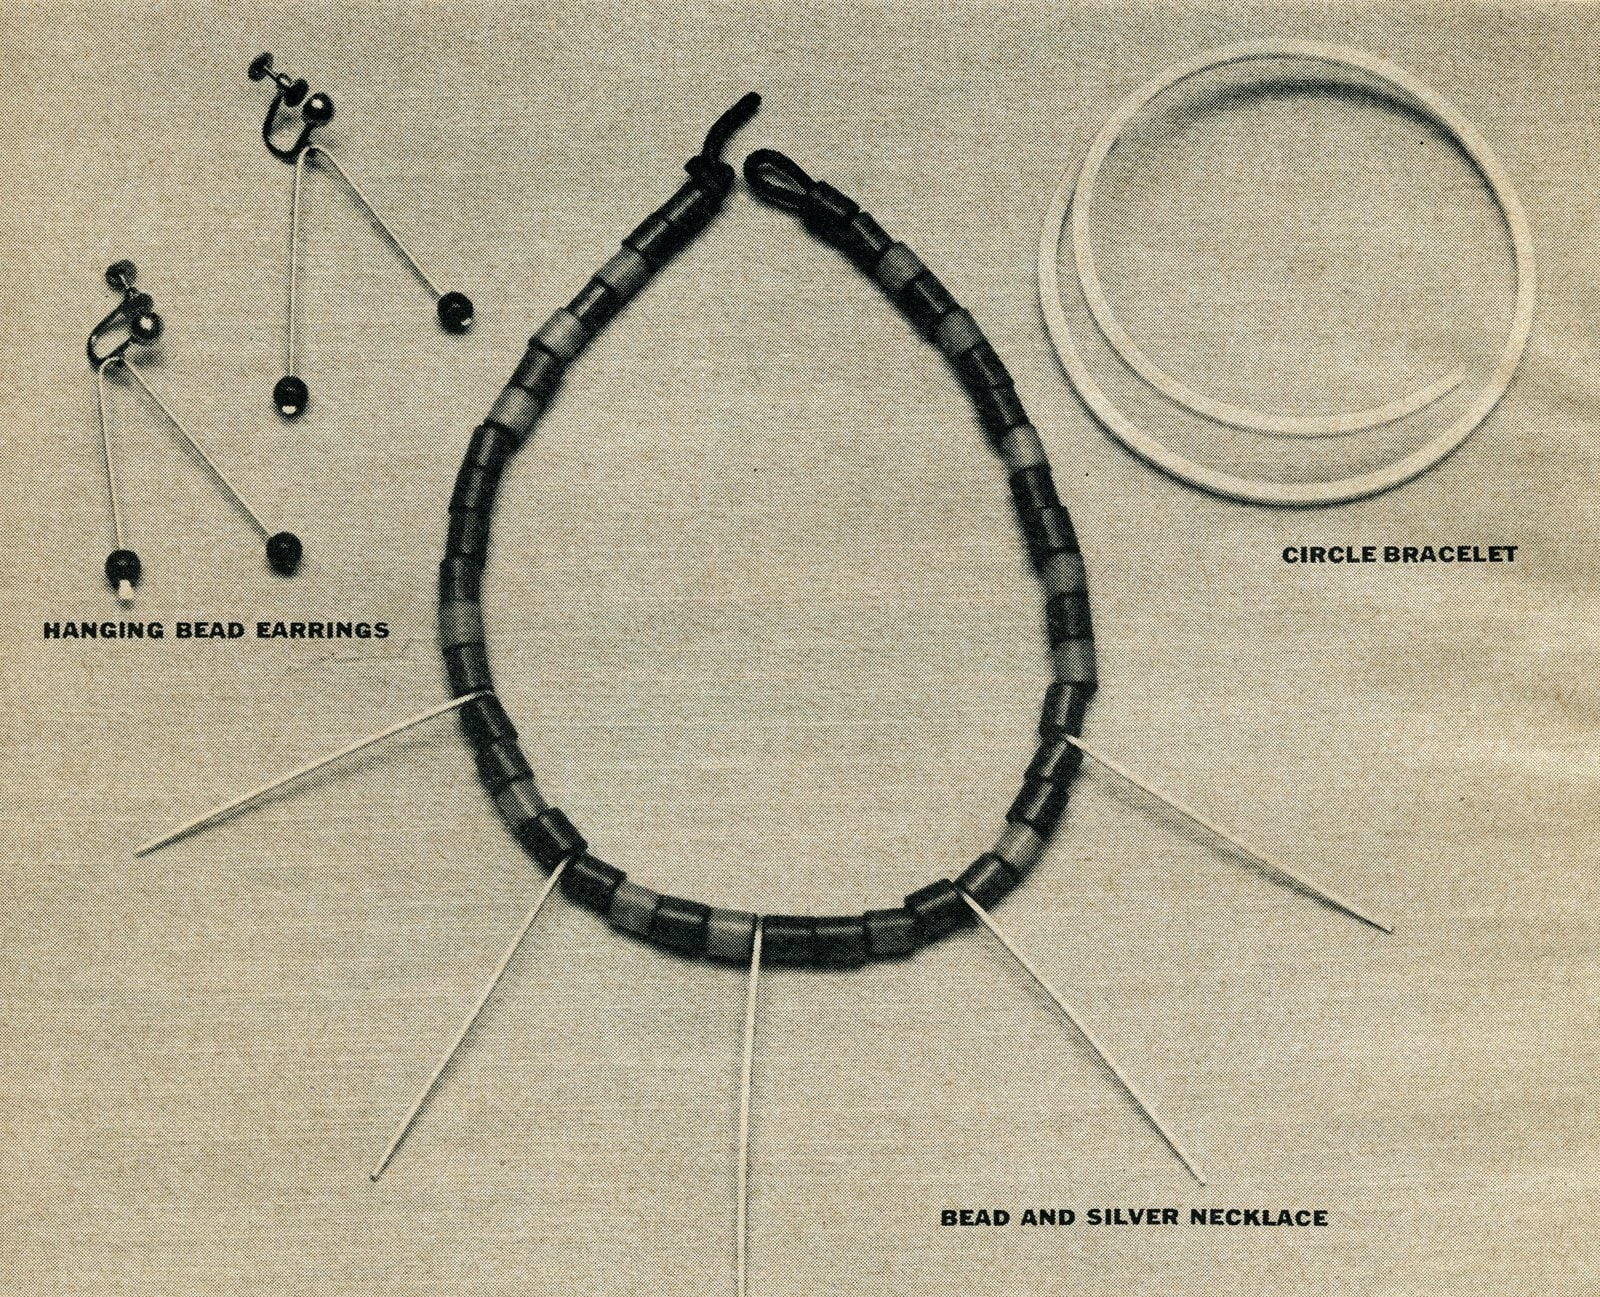 1958-Collector's craft book Jewelry you can make (2)